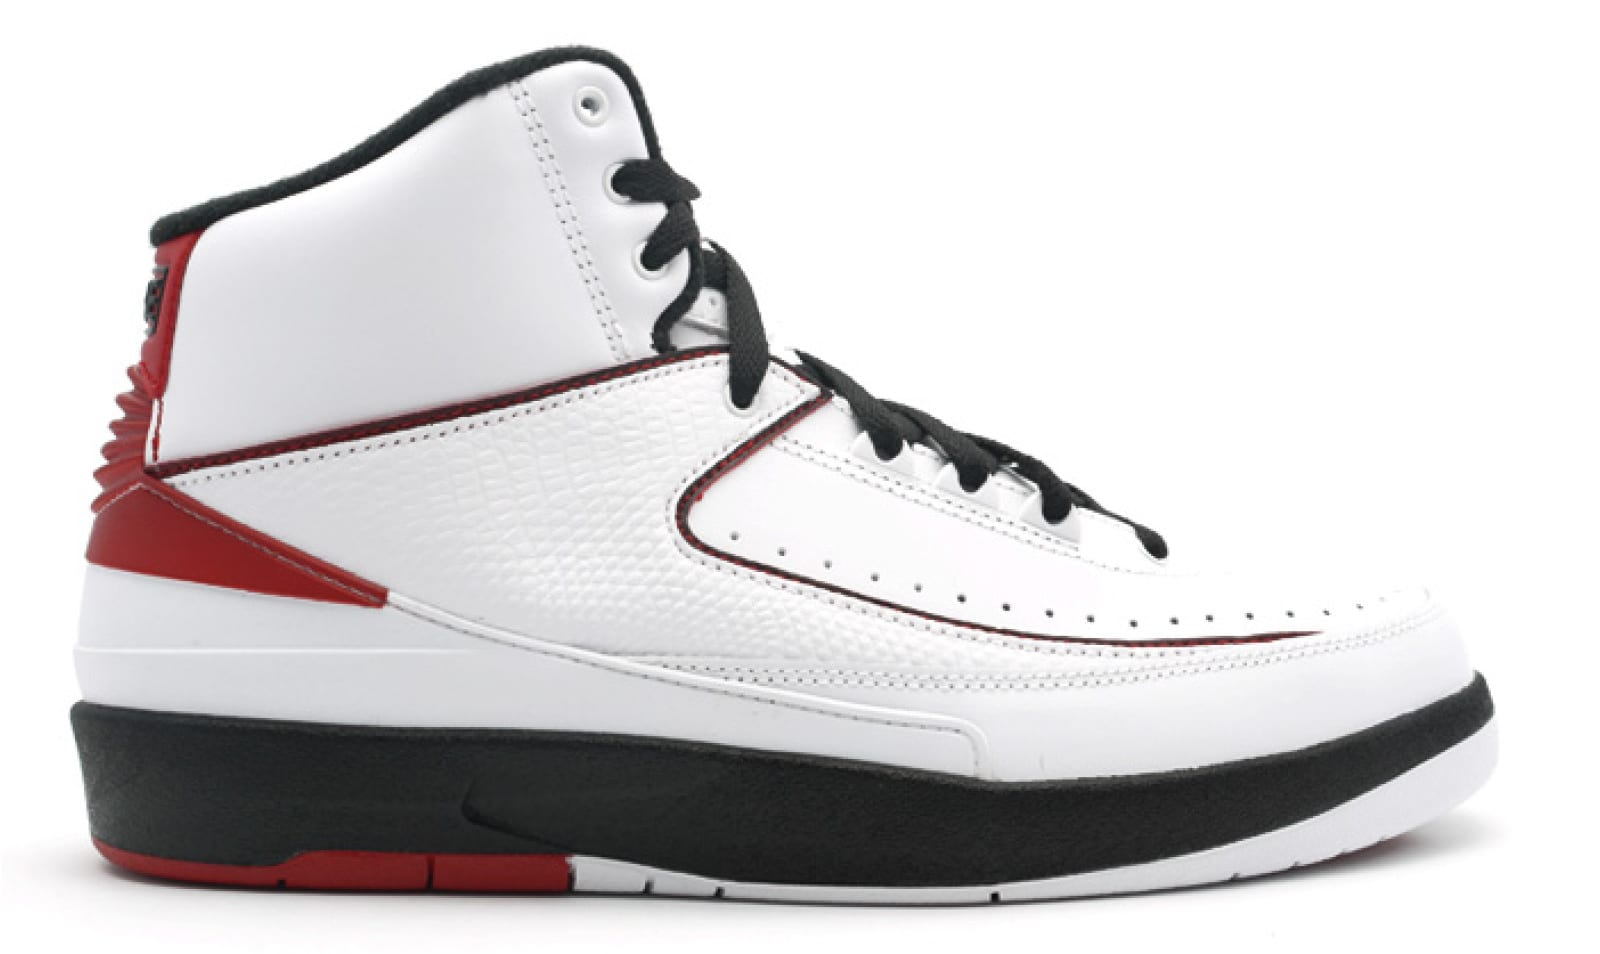 Air Jordan 2 'White/Black/Red'